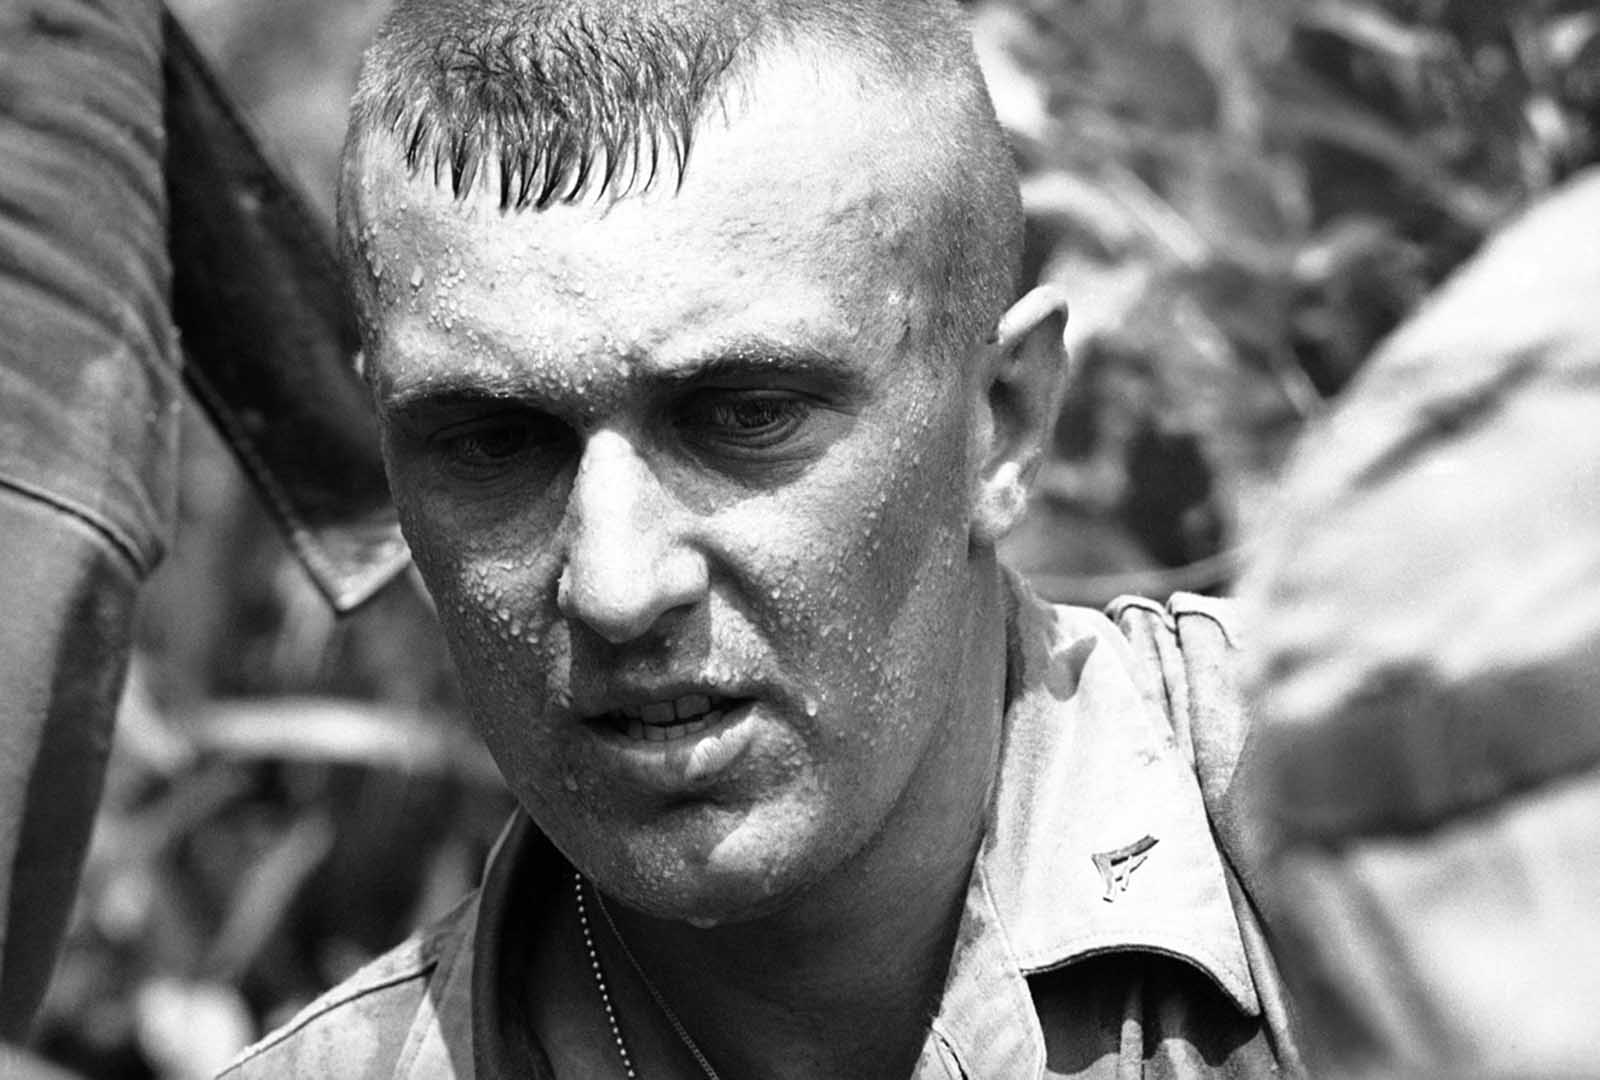 A U.S. Marine, newly arrived in South Vietnam on April 29, 1965, drips with perspiration while on patrol in search of Viet Cong guerrillas near Da Nang air base. American troops found 100-degree temperatures a tough part of the job. General Wallace M. Greene Jr., a Marine Corps commandant, after a visit to the area, authorized light short-sleeved uniforms as aid to troops' comfort.